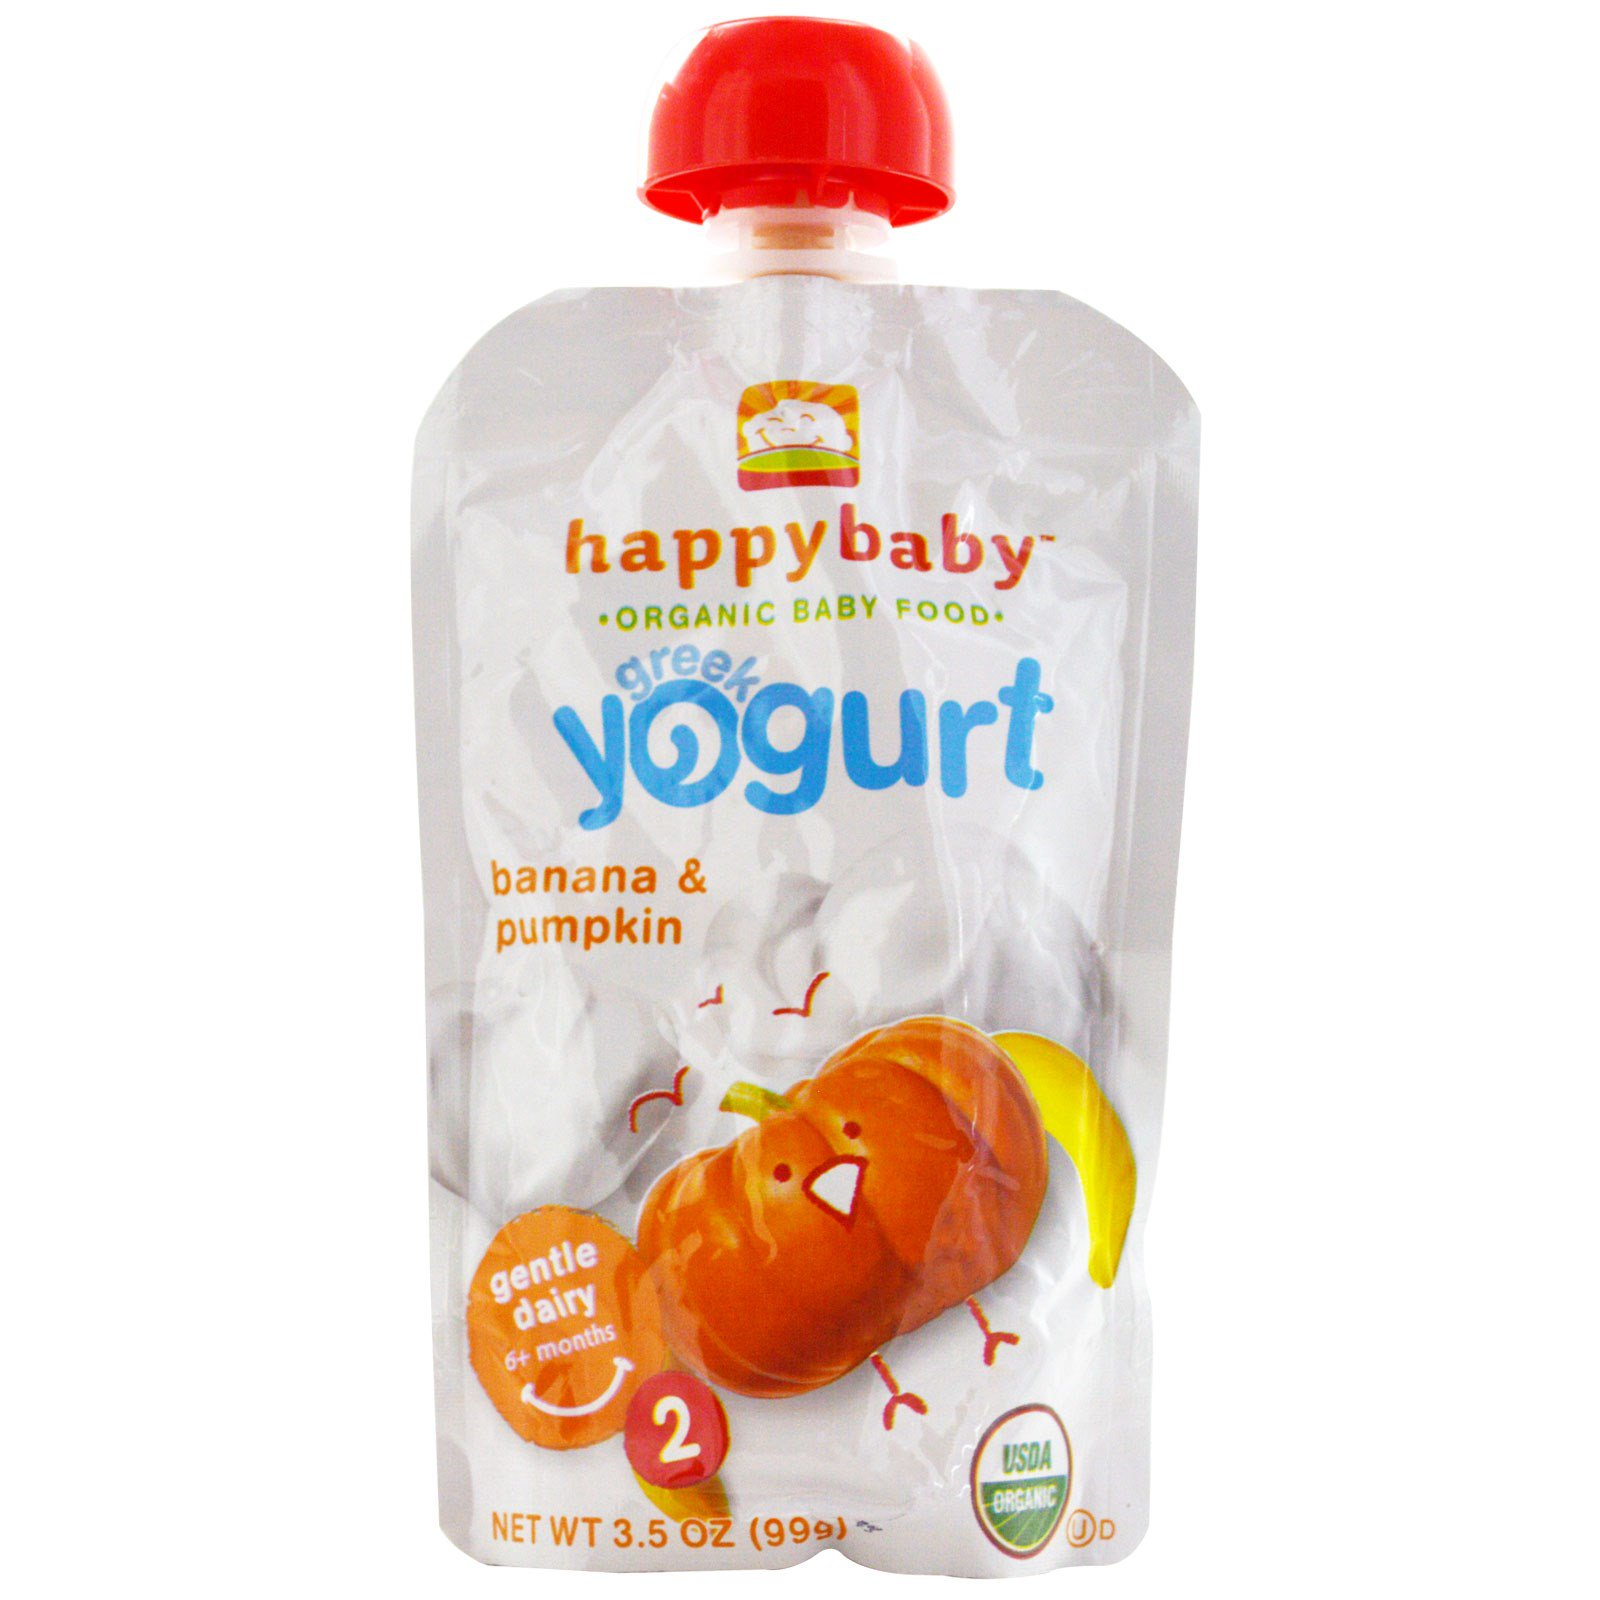 10 Yogurt Flavors You Need To Know About